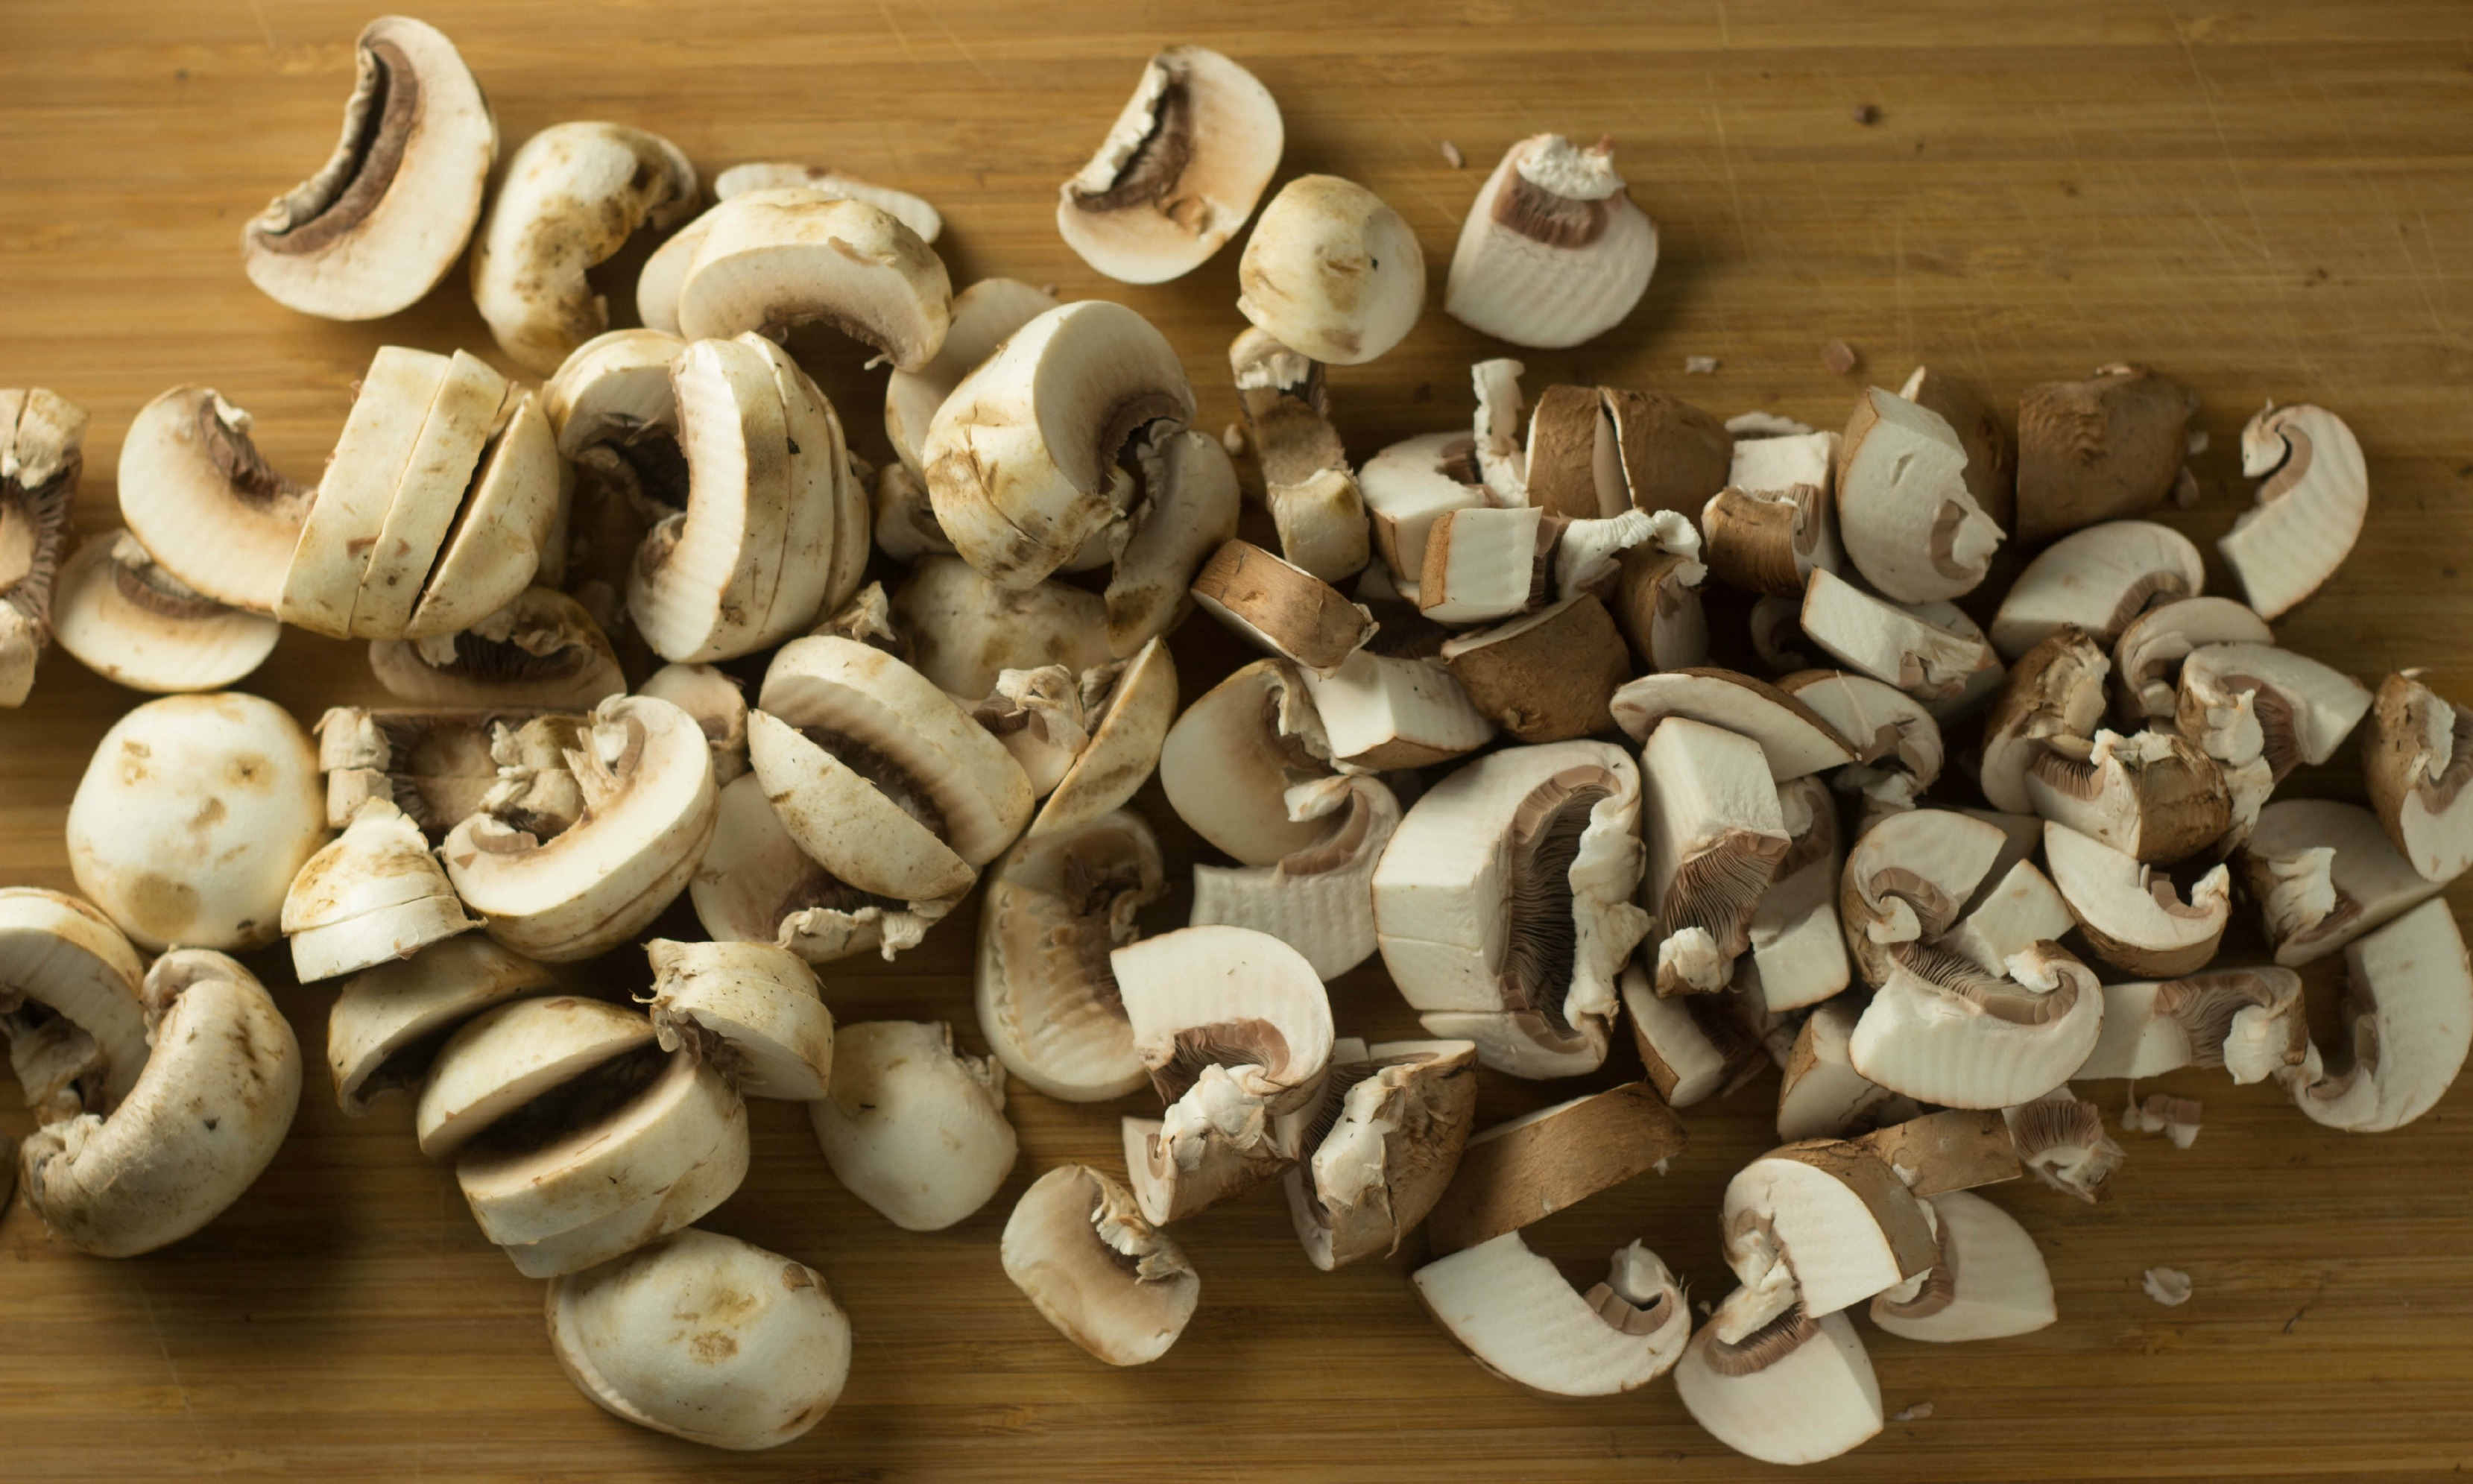 Mushroom Soup - Cooking Onions